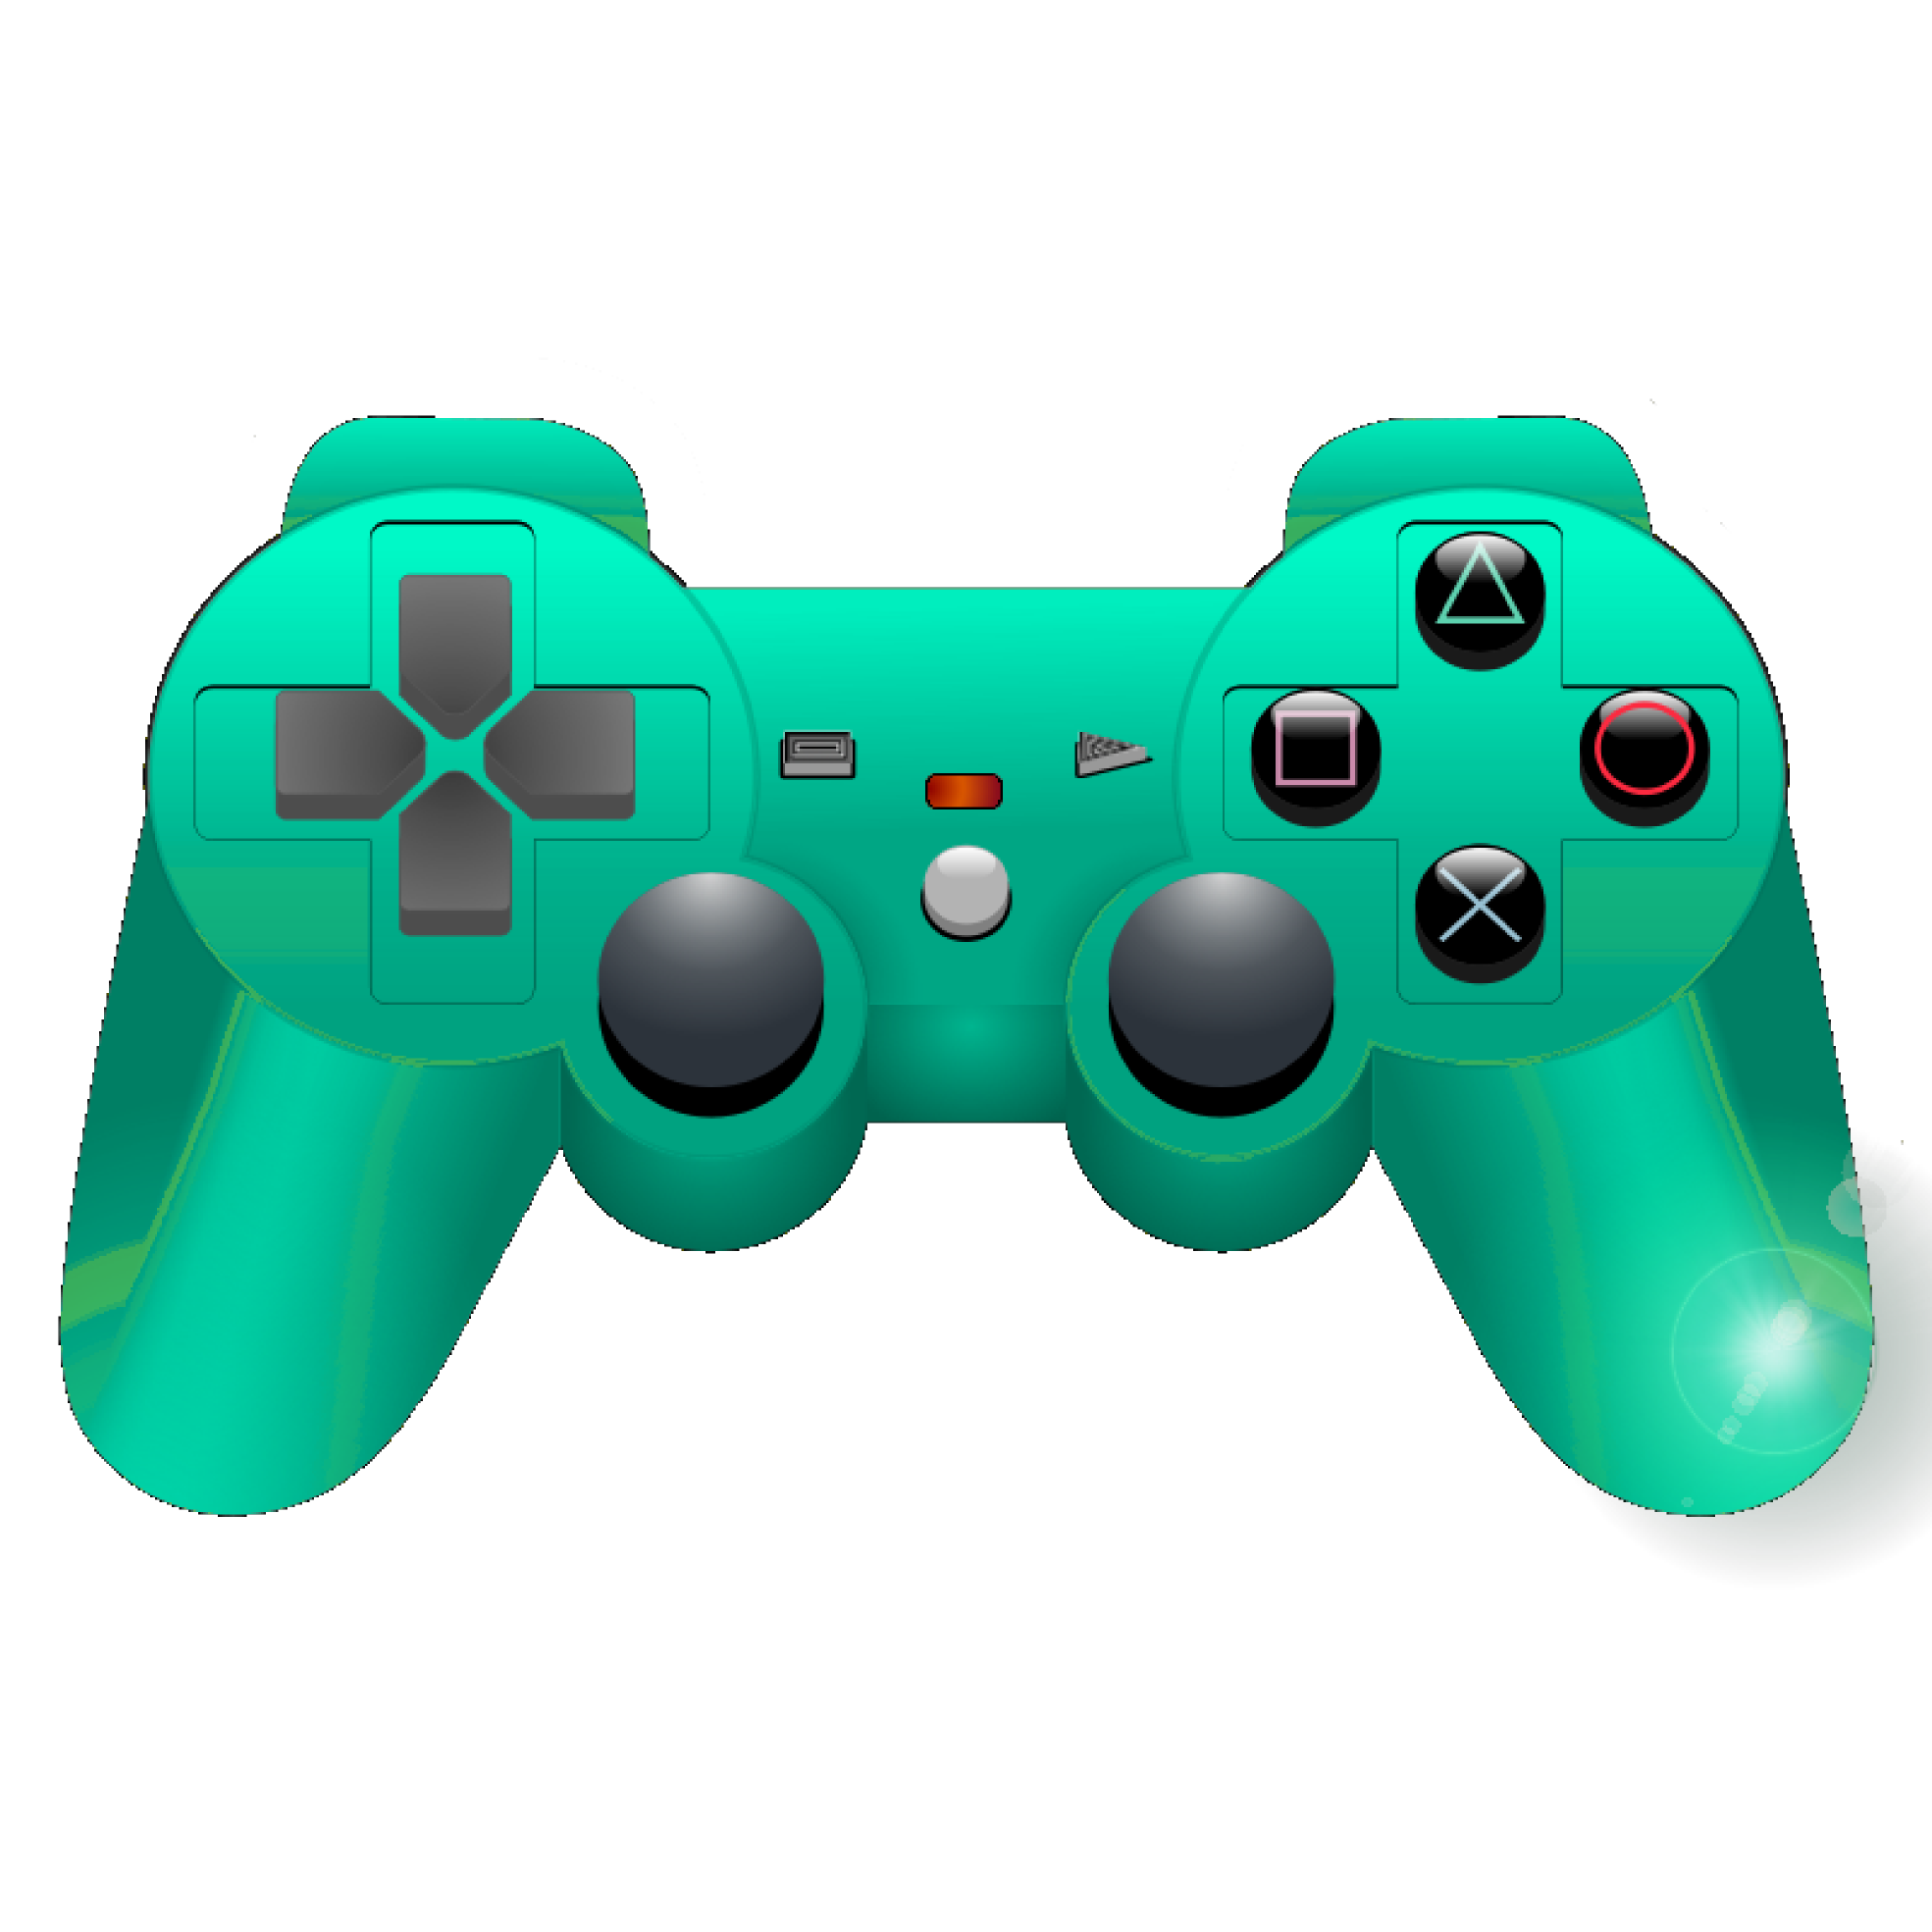 Controller clipart video game controller Clipart #9 Download clipart clipart